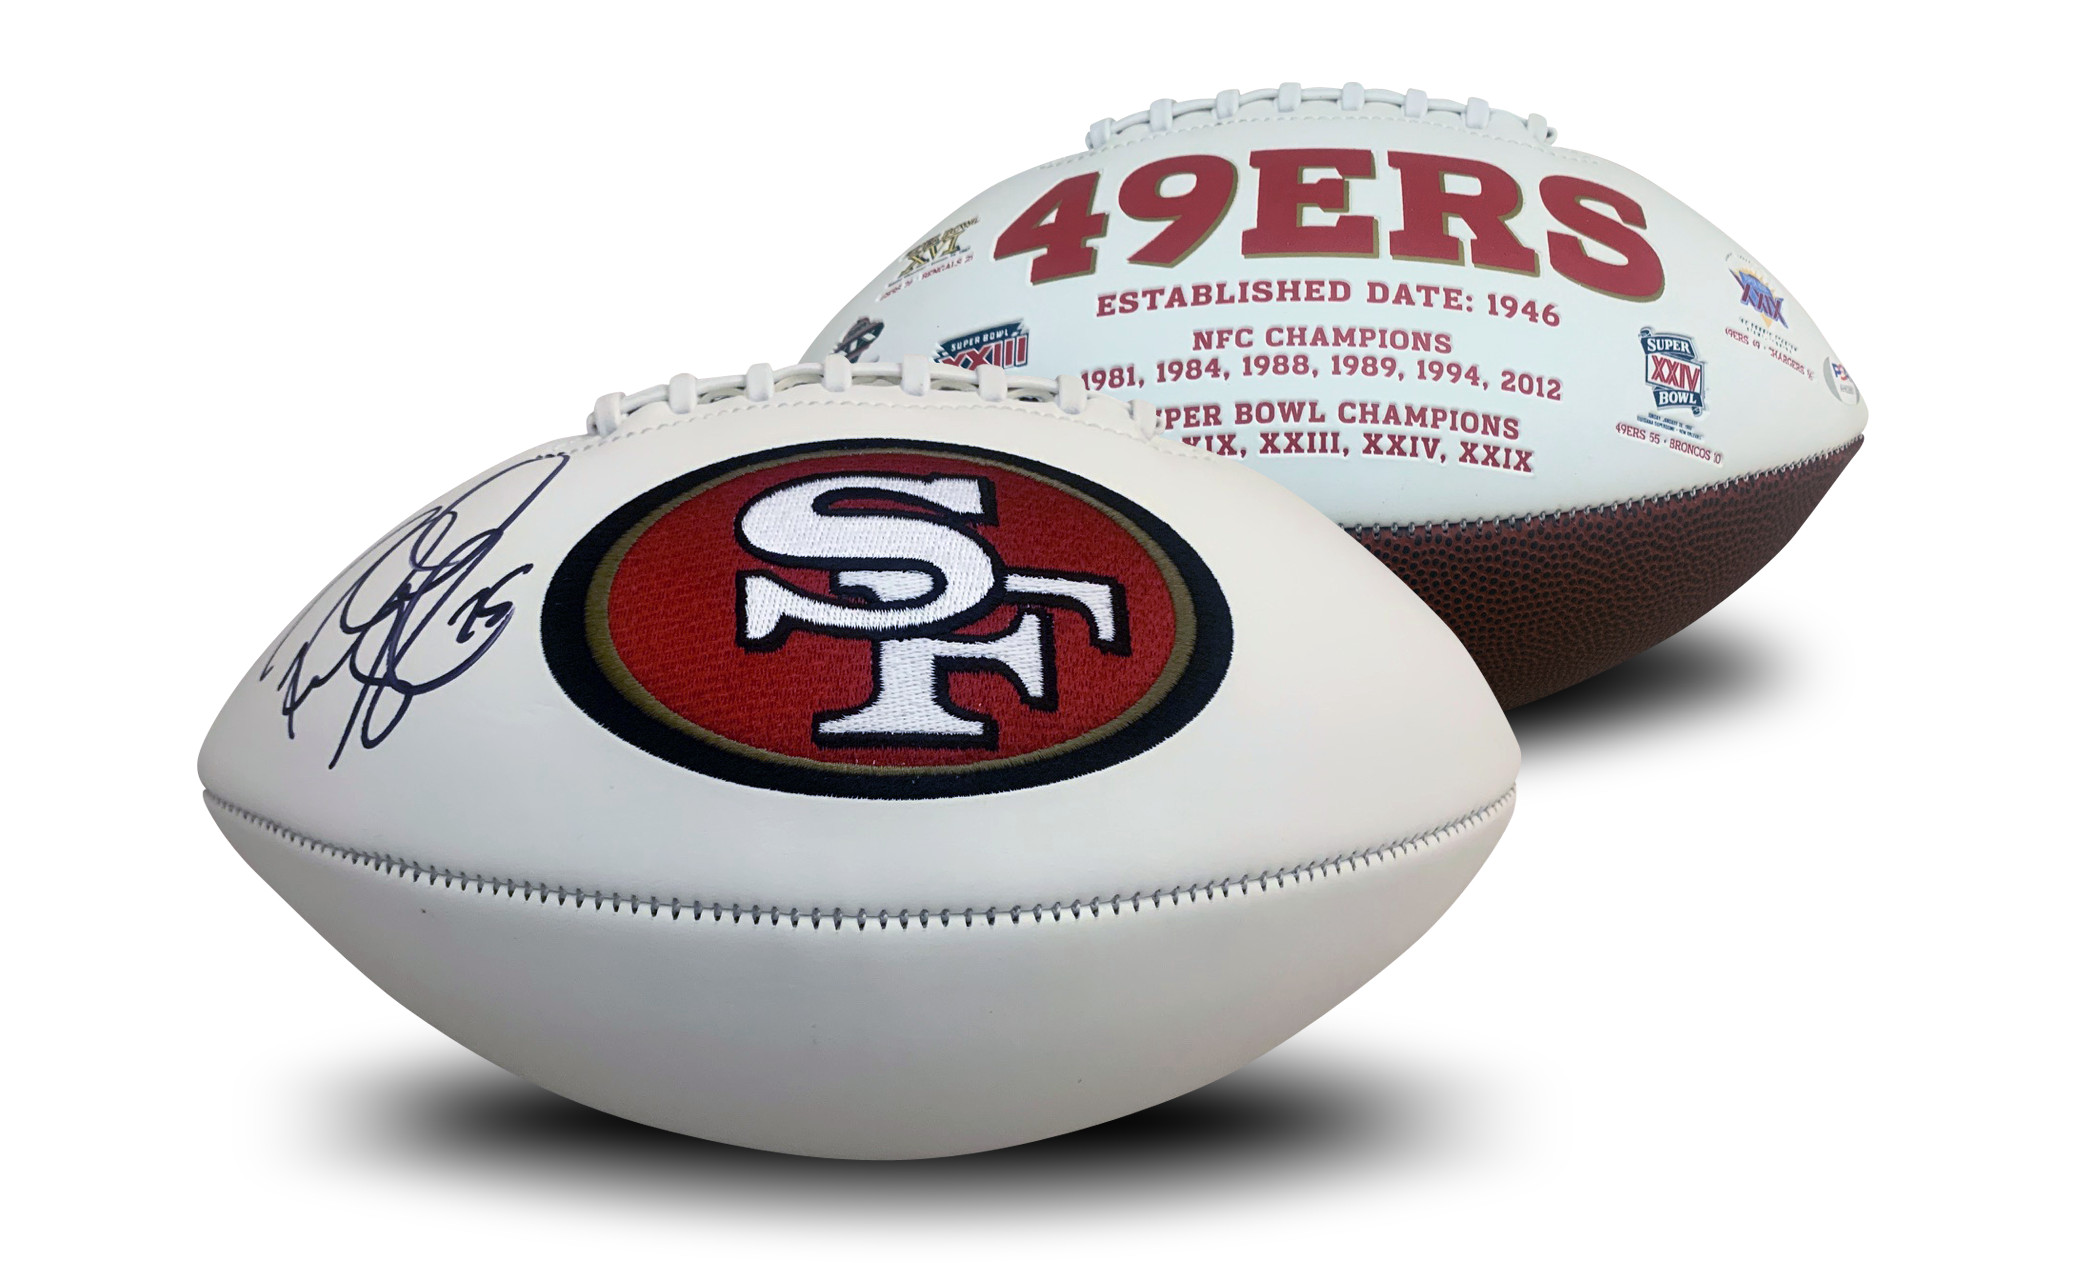 Richard Sherman Autographed San Francisco 49ers NFL White Panel Logo Signed Football PSA DNA COA 49ers star cornerback Richard Sherman has autographed this officially licensed 49ers full size logo football. Autograph is authenticated by PSA/DNA, the world's leading authenticator of sports autographs. Comes with their unique sticker # fixed to the item and verified on their website. Also, comes with their certificate of authenticity with same matching #.